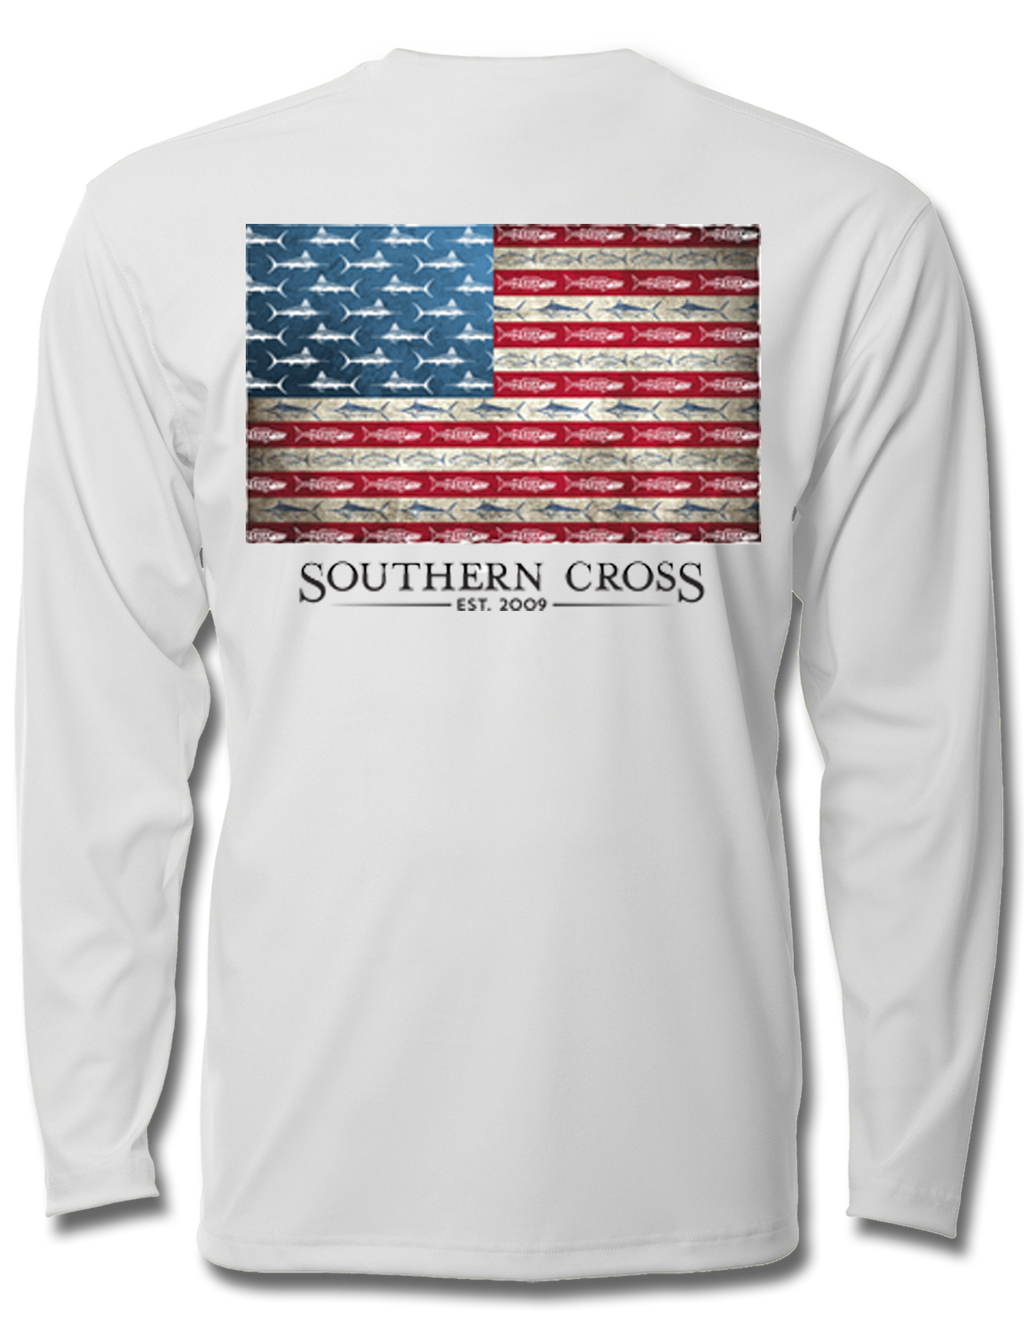 American Flag & Release Youth Performance Long Sleeve, Performance Gear - Southern Cross Apparel